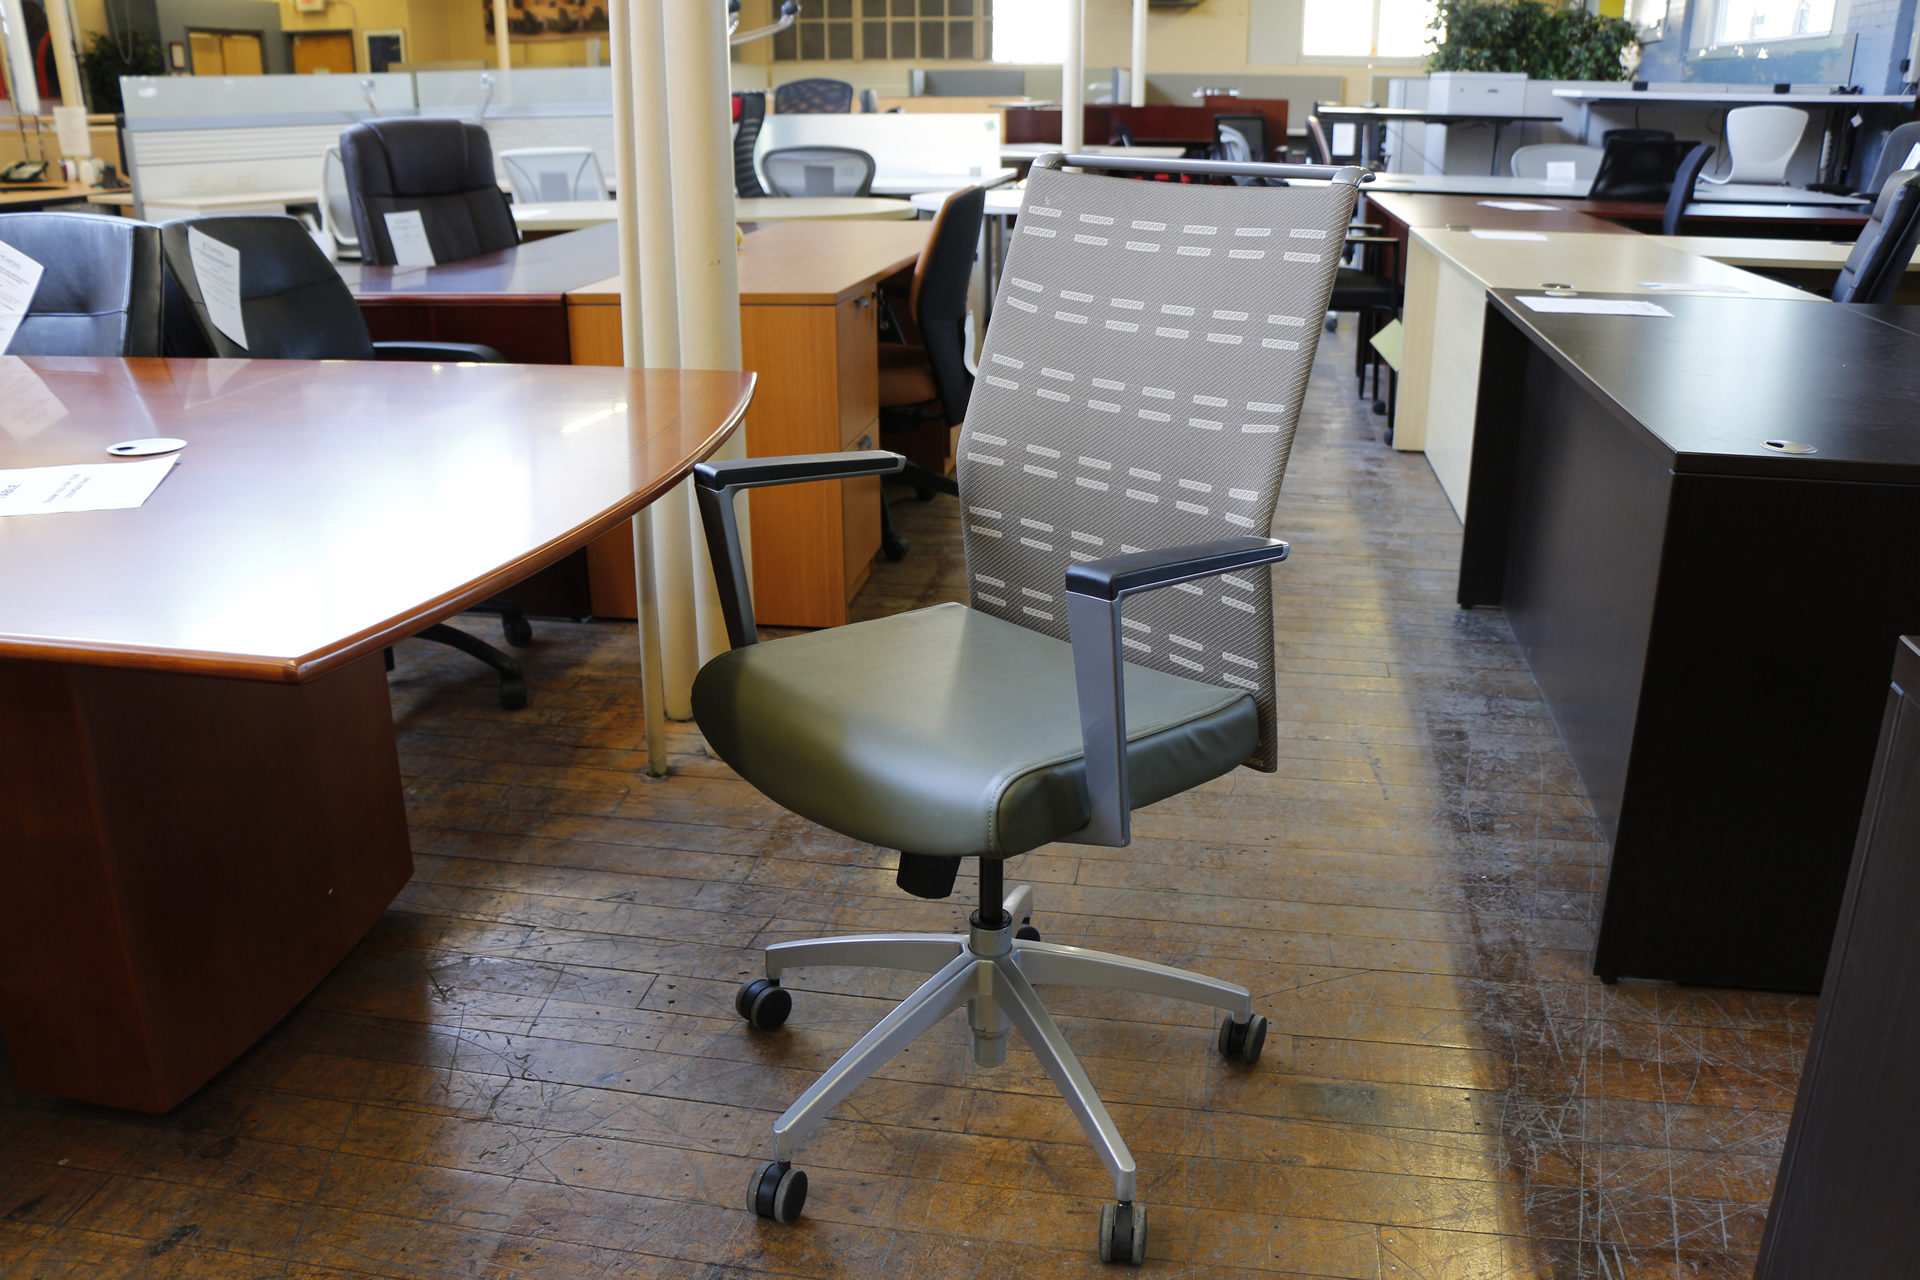 peartreeofficefurniture_peartreeofficefurniture_mg_5221.jpg